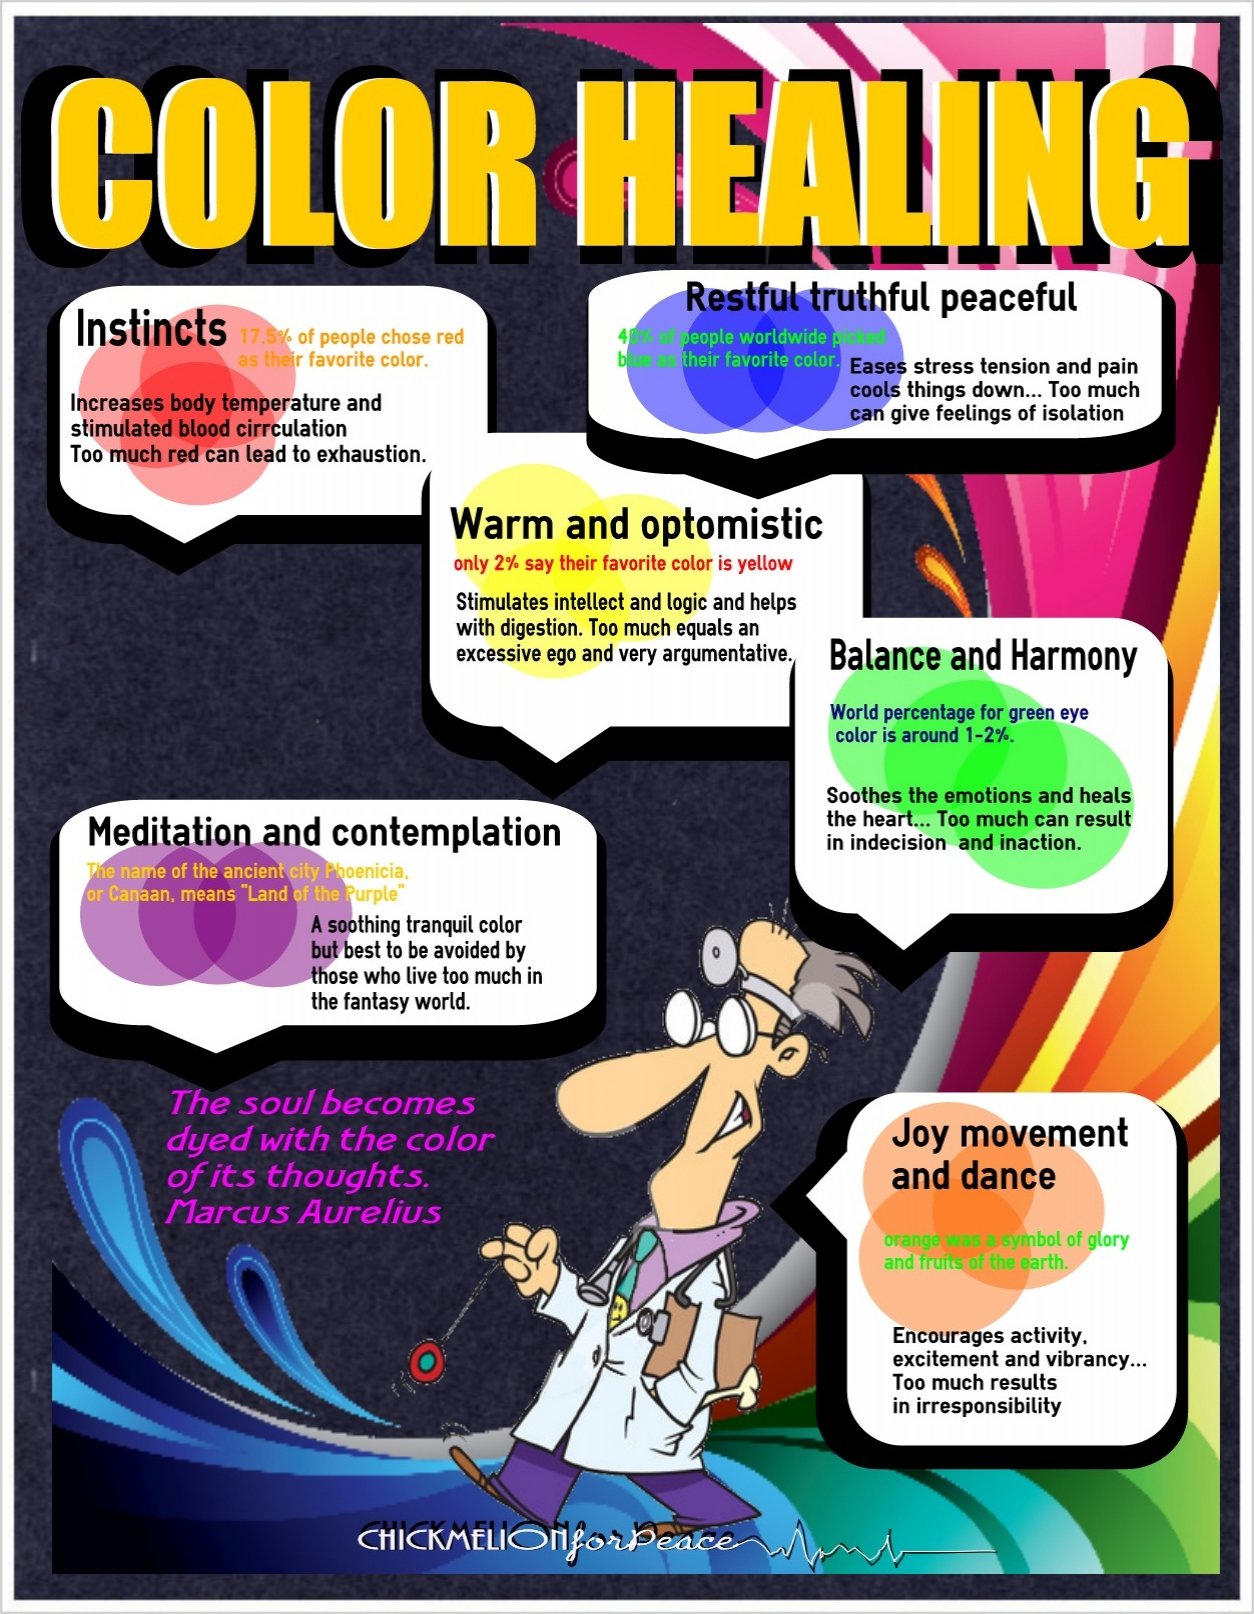 COLORHEALING title=